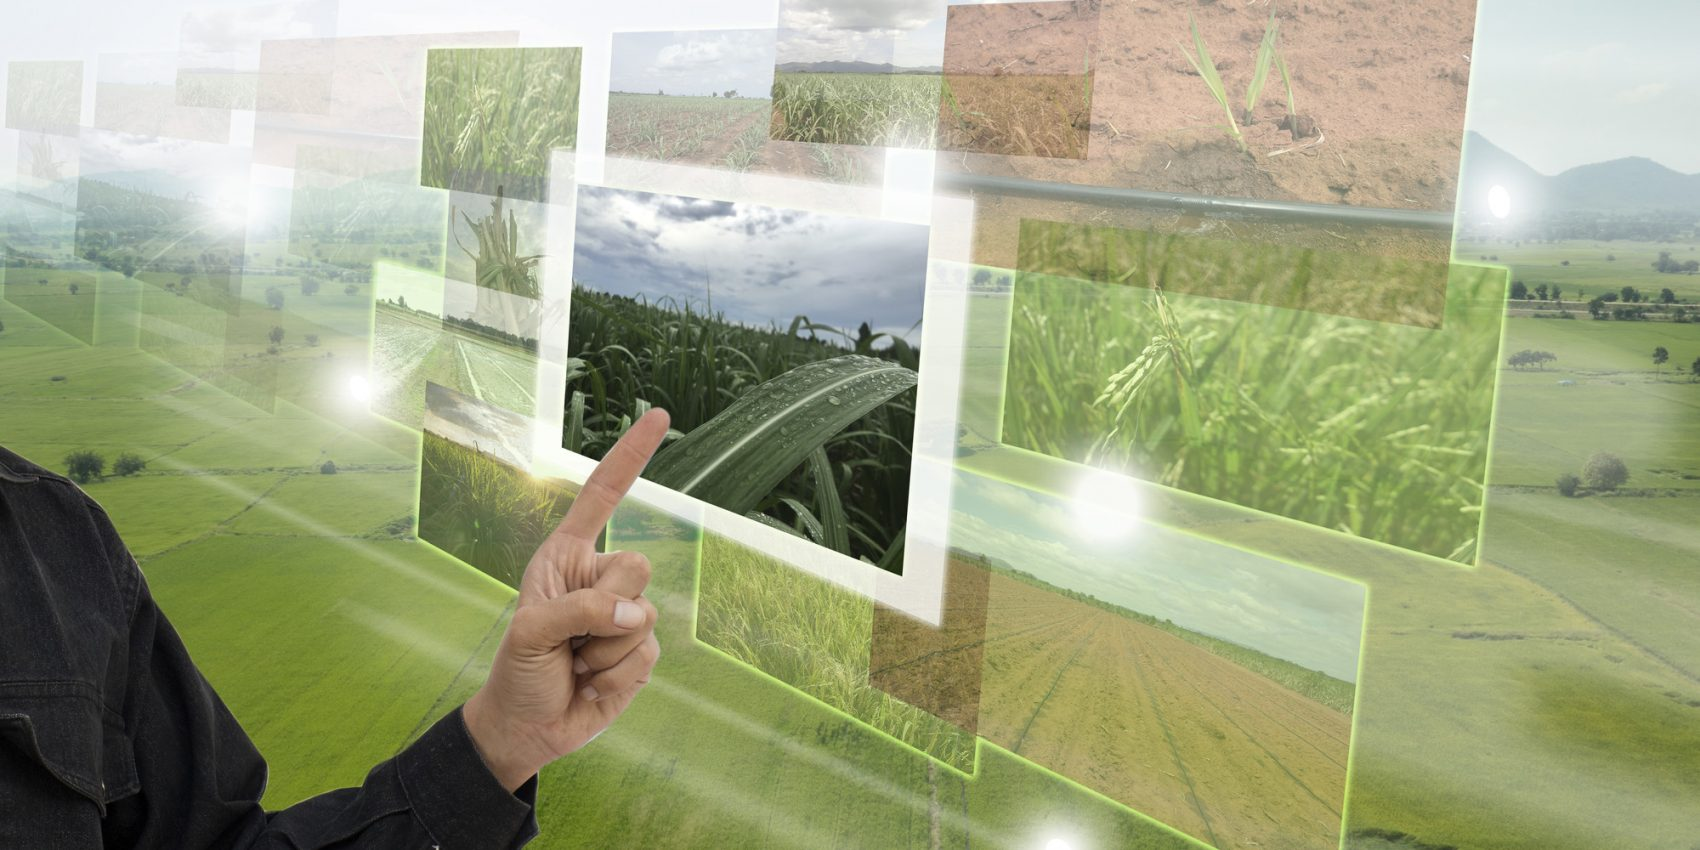 RS1718_Internet of things (agriculture concept), smart agriculture, industrial agriculture. User points out to use broadened reality technology to control, monitor and manage in the farm-lpr